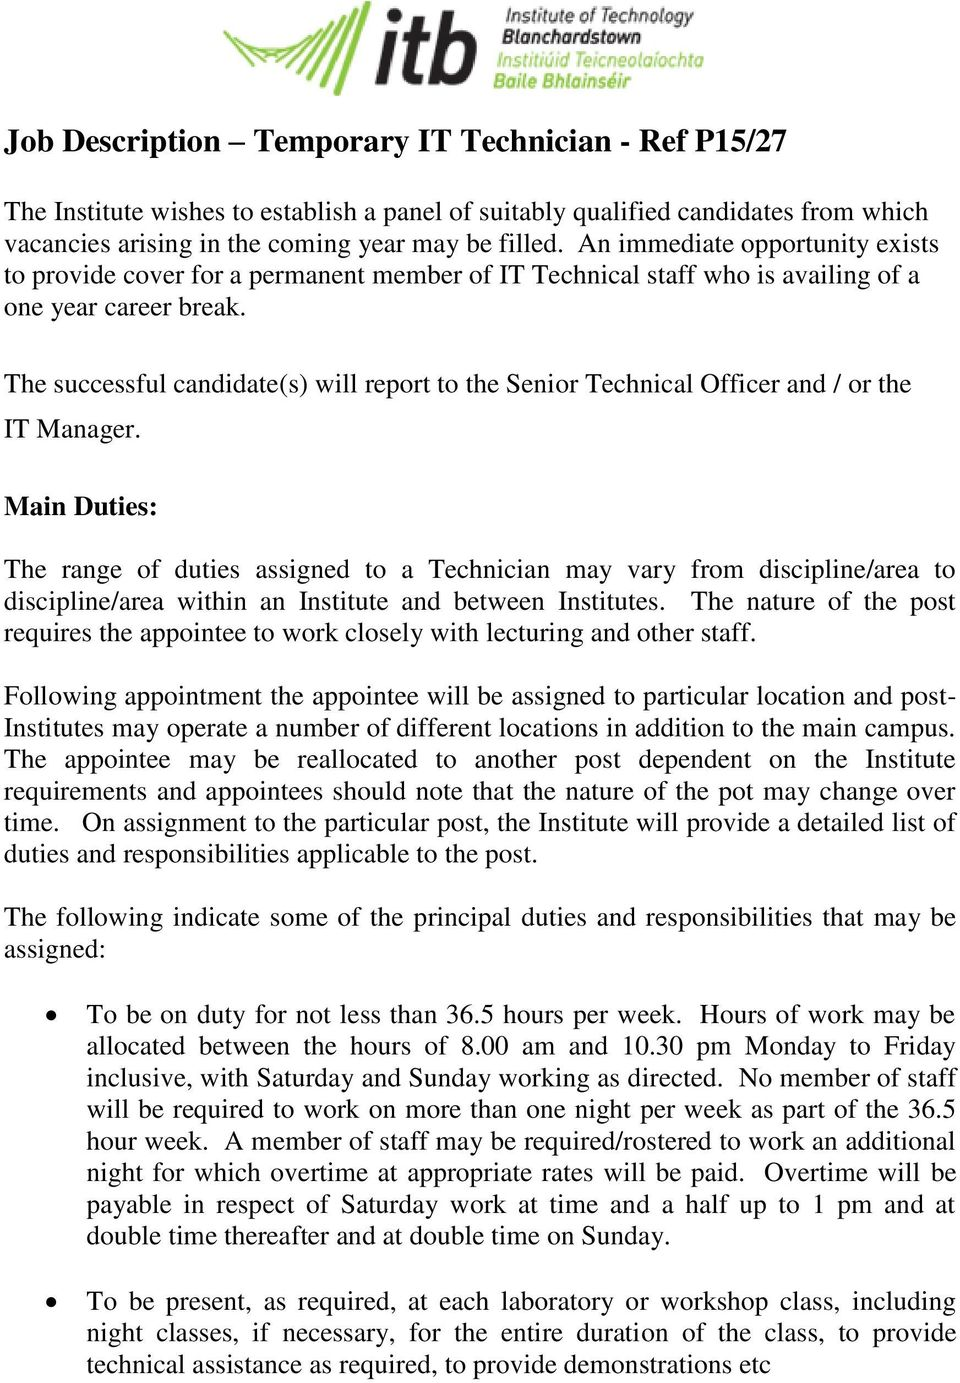 The successful candidate(s) will report to the Senior Technical Officer and / or the IT Manager.